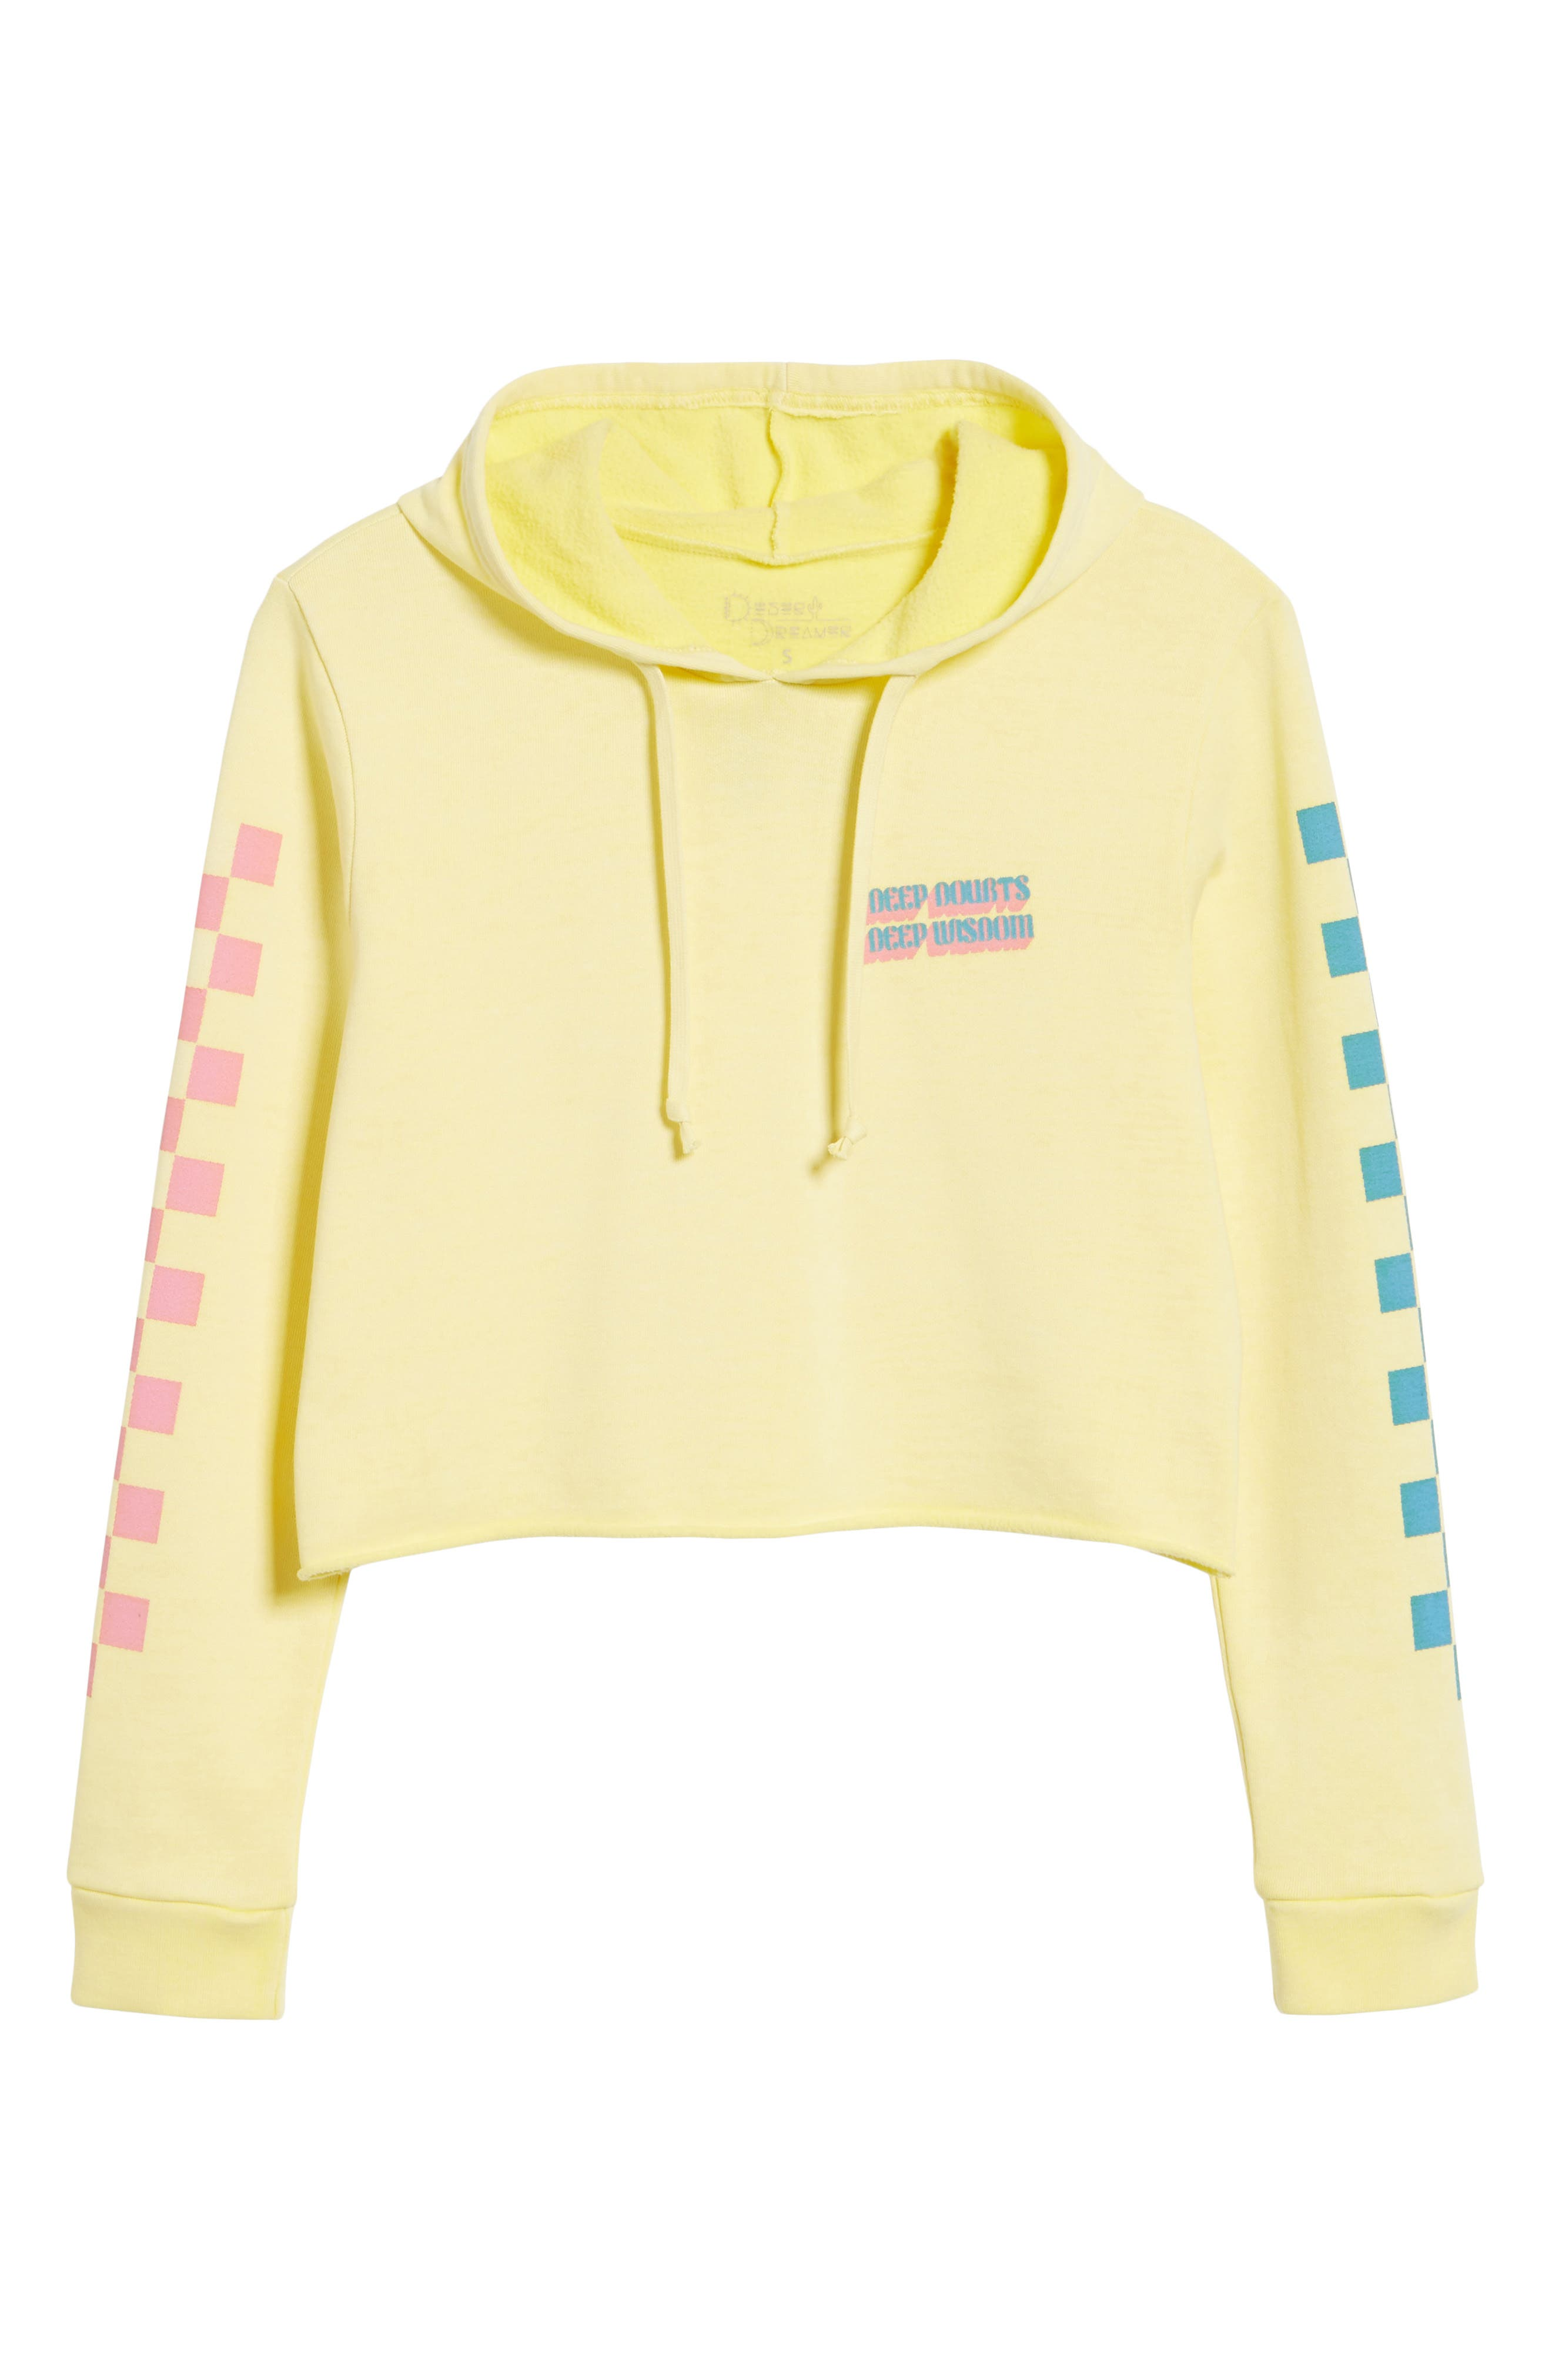 Deep Doubts Crop Hoodie,                             Alternate thumbnail 7, color,                             Washed Gold